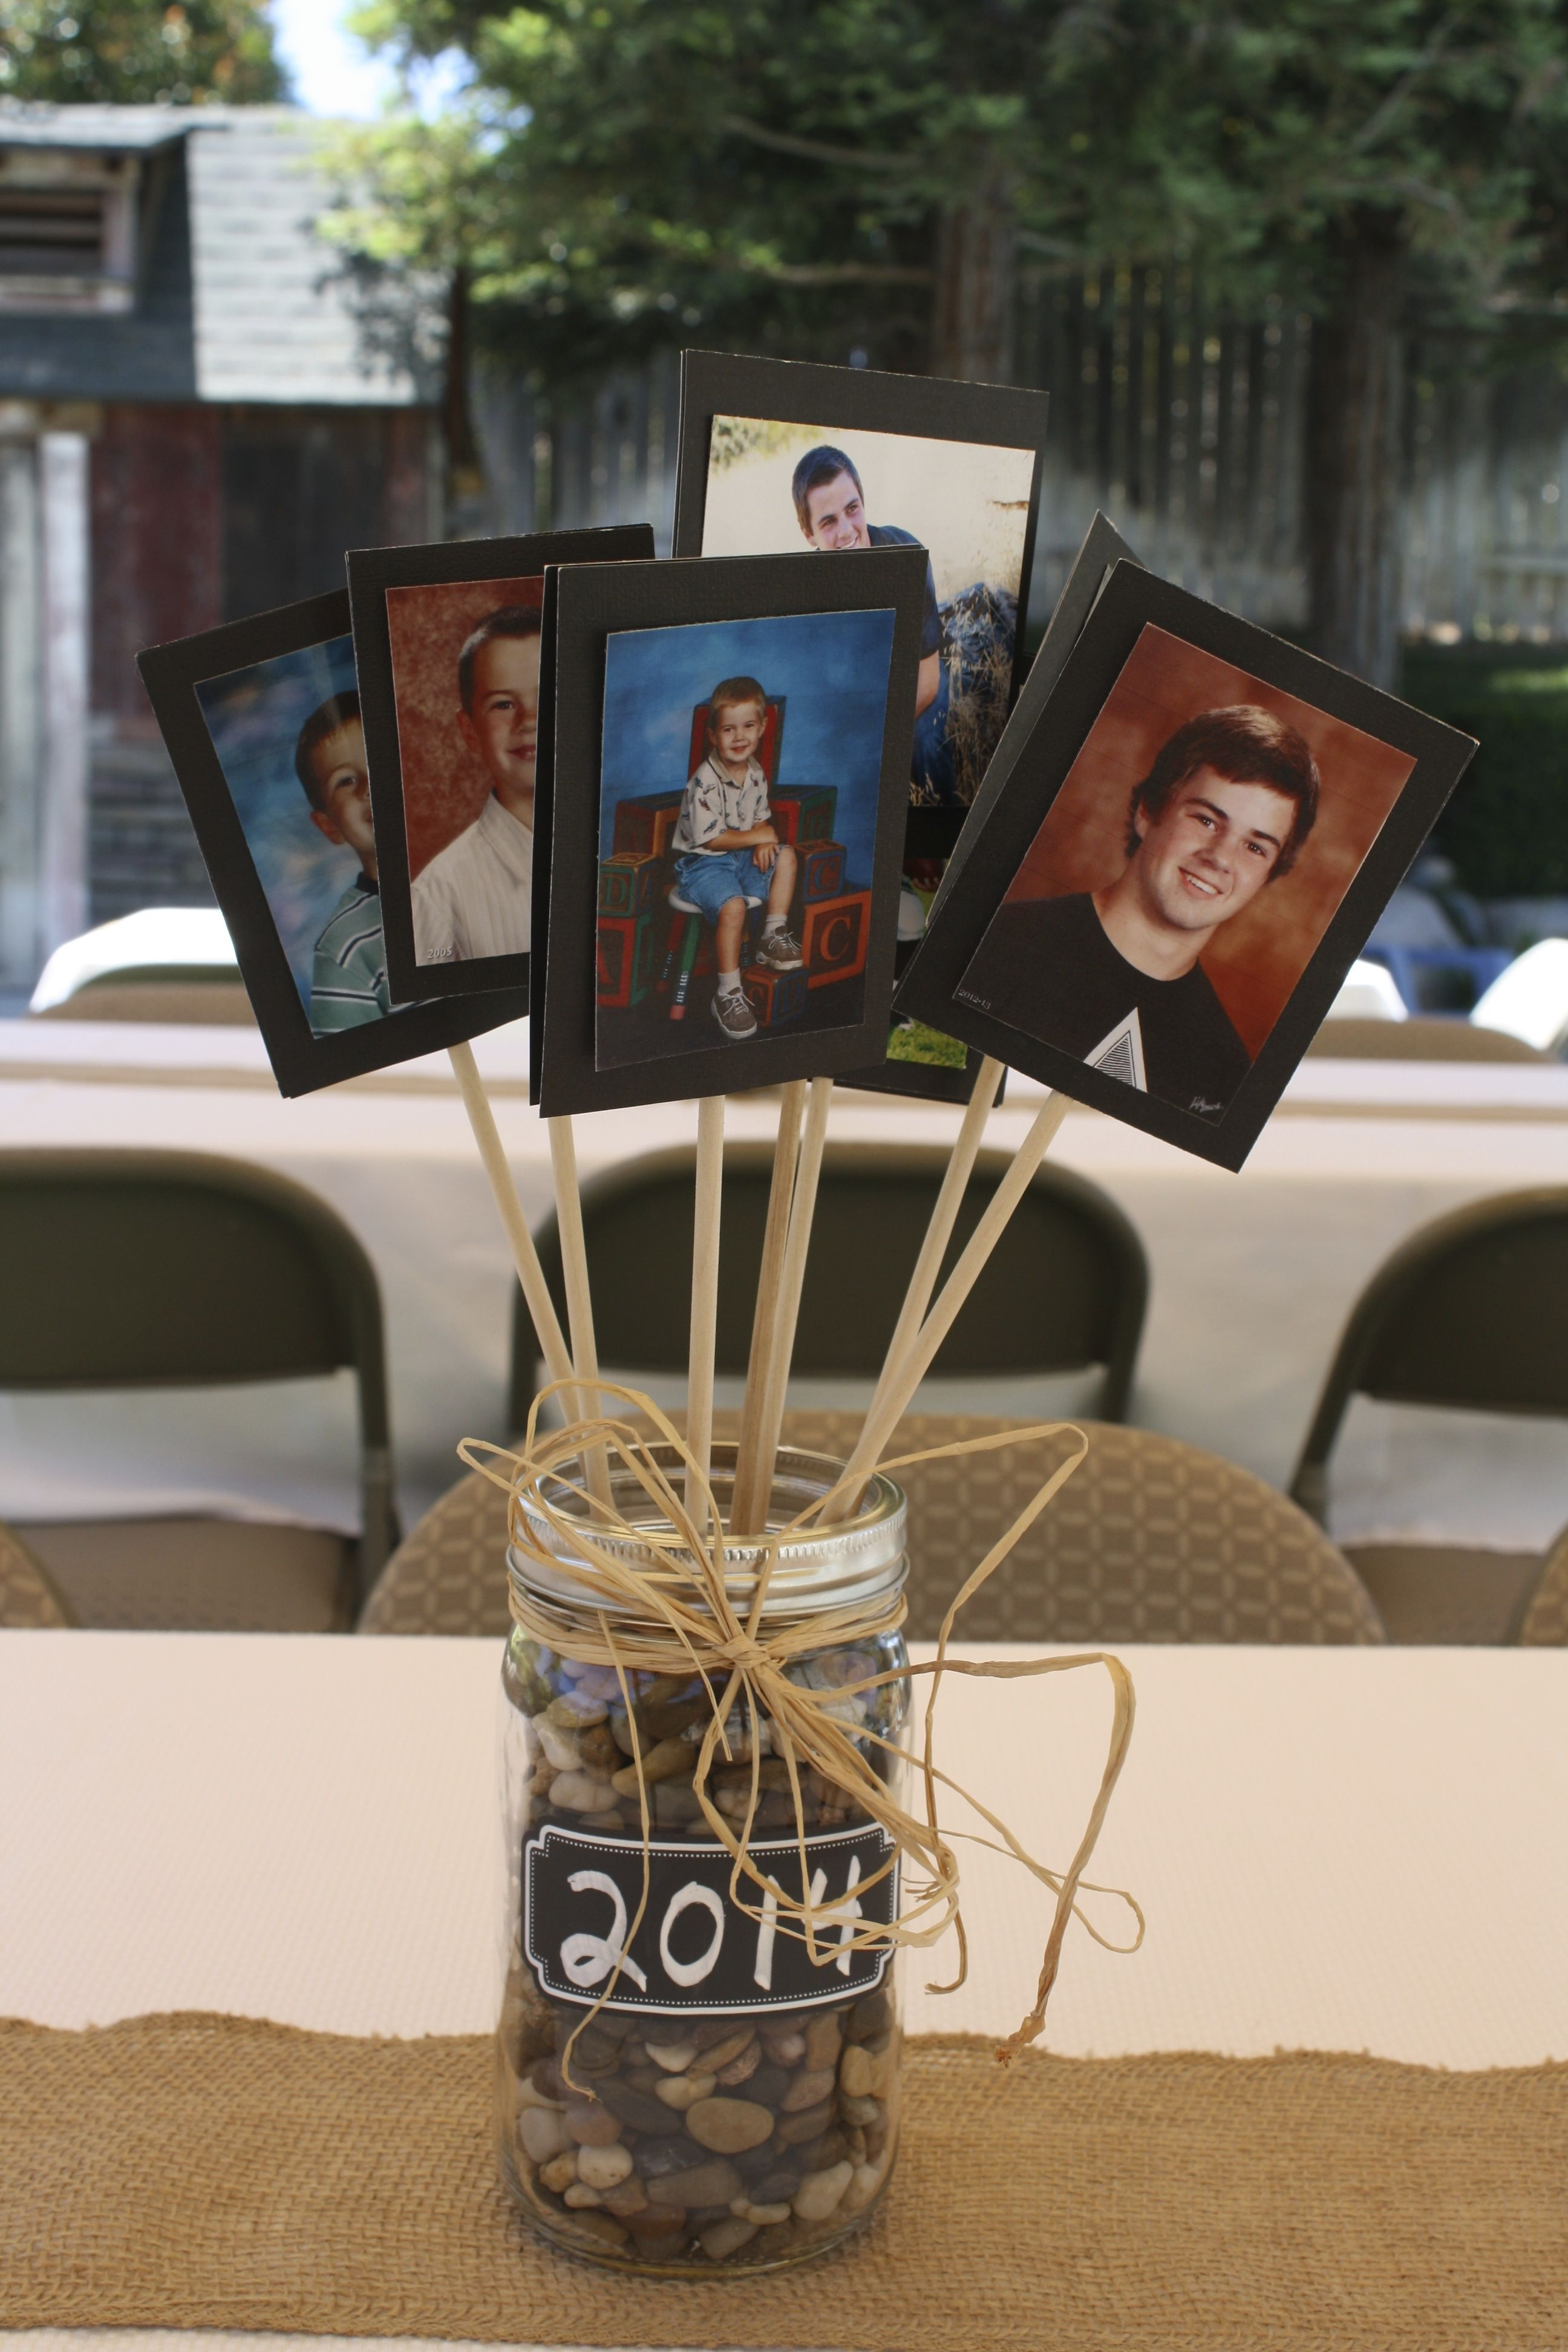 Rustic Decorating Ideas Graduation Centerpiece For Tables At A Graduation Party Good For